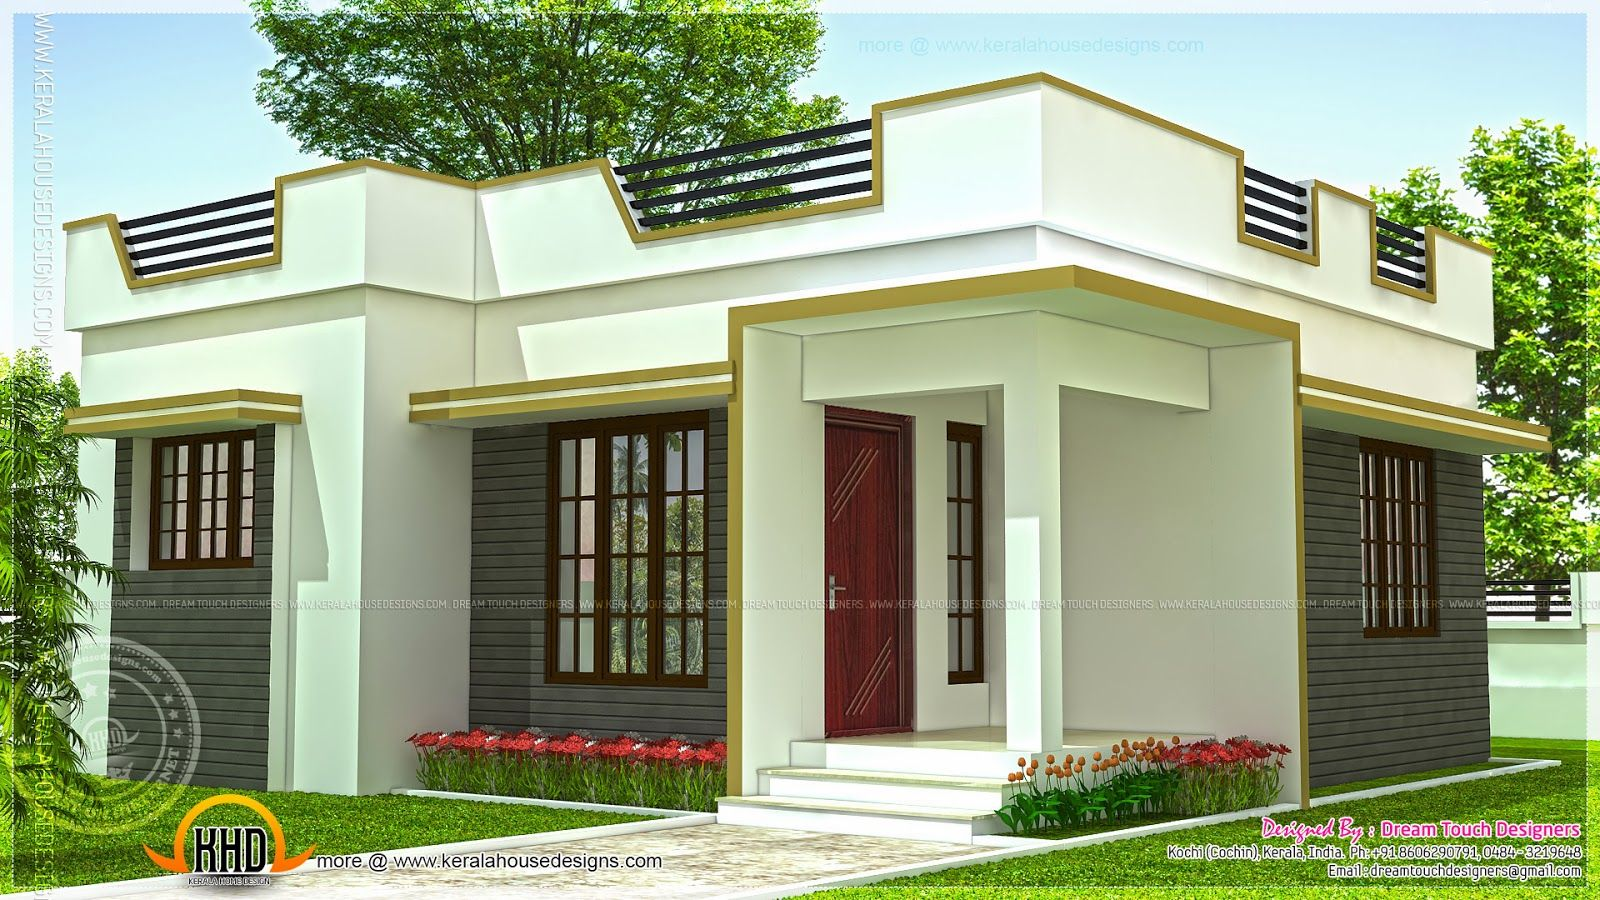 Lately 21 small house design kerala small house for Small home outside design